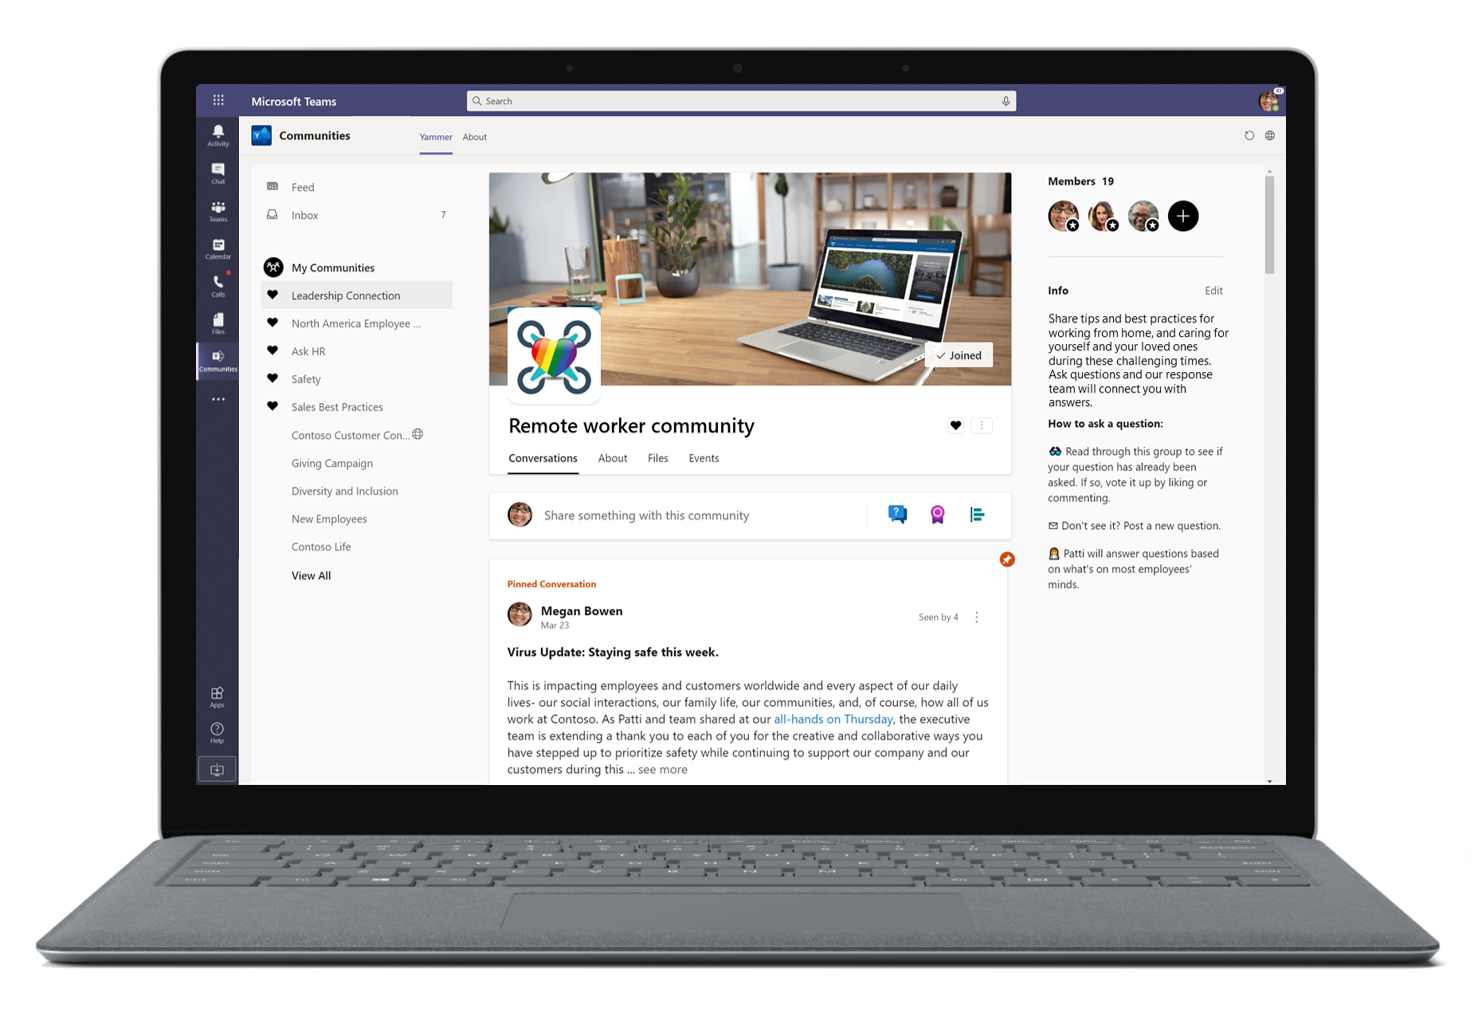 Image of a remote worker community in Microsoft Teams.